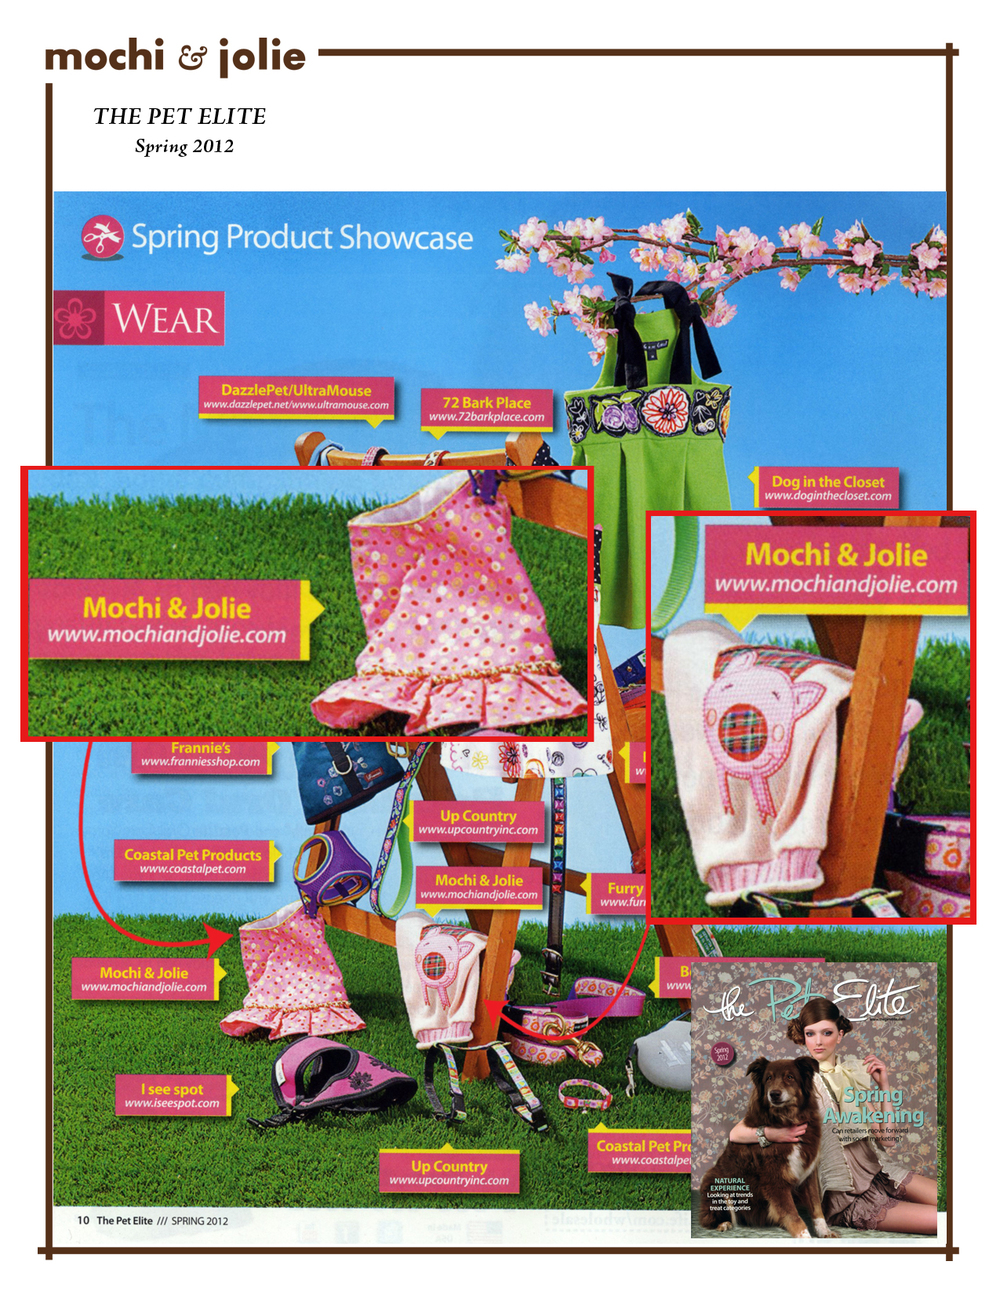 The Pet Elite (Spring 2012)